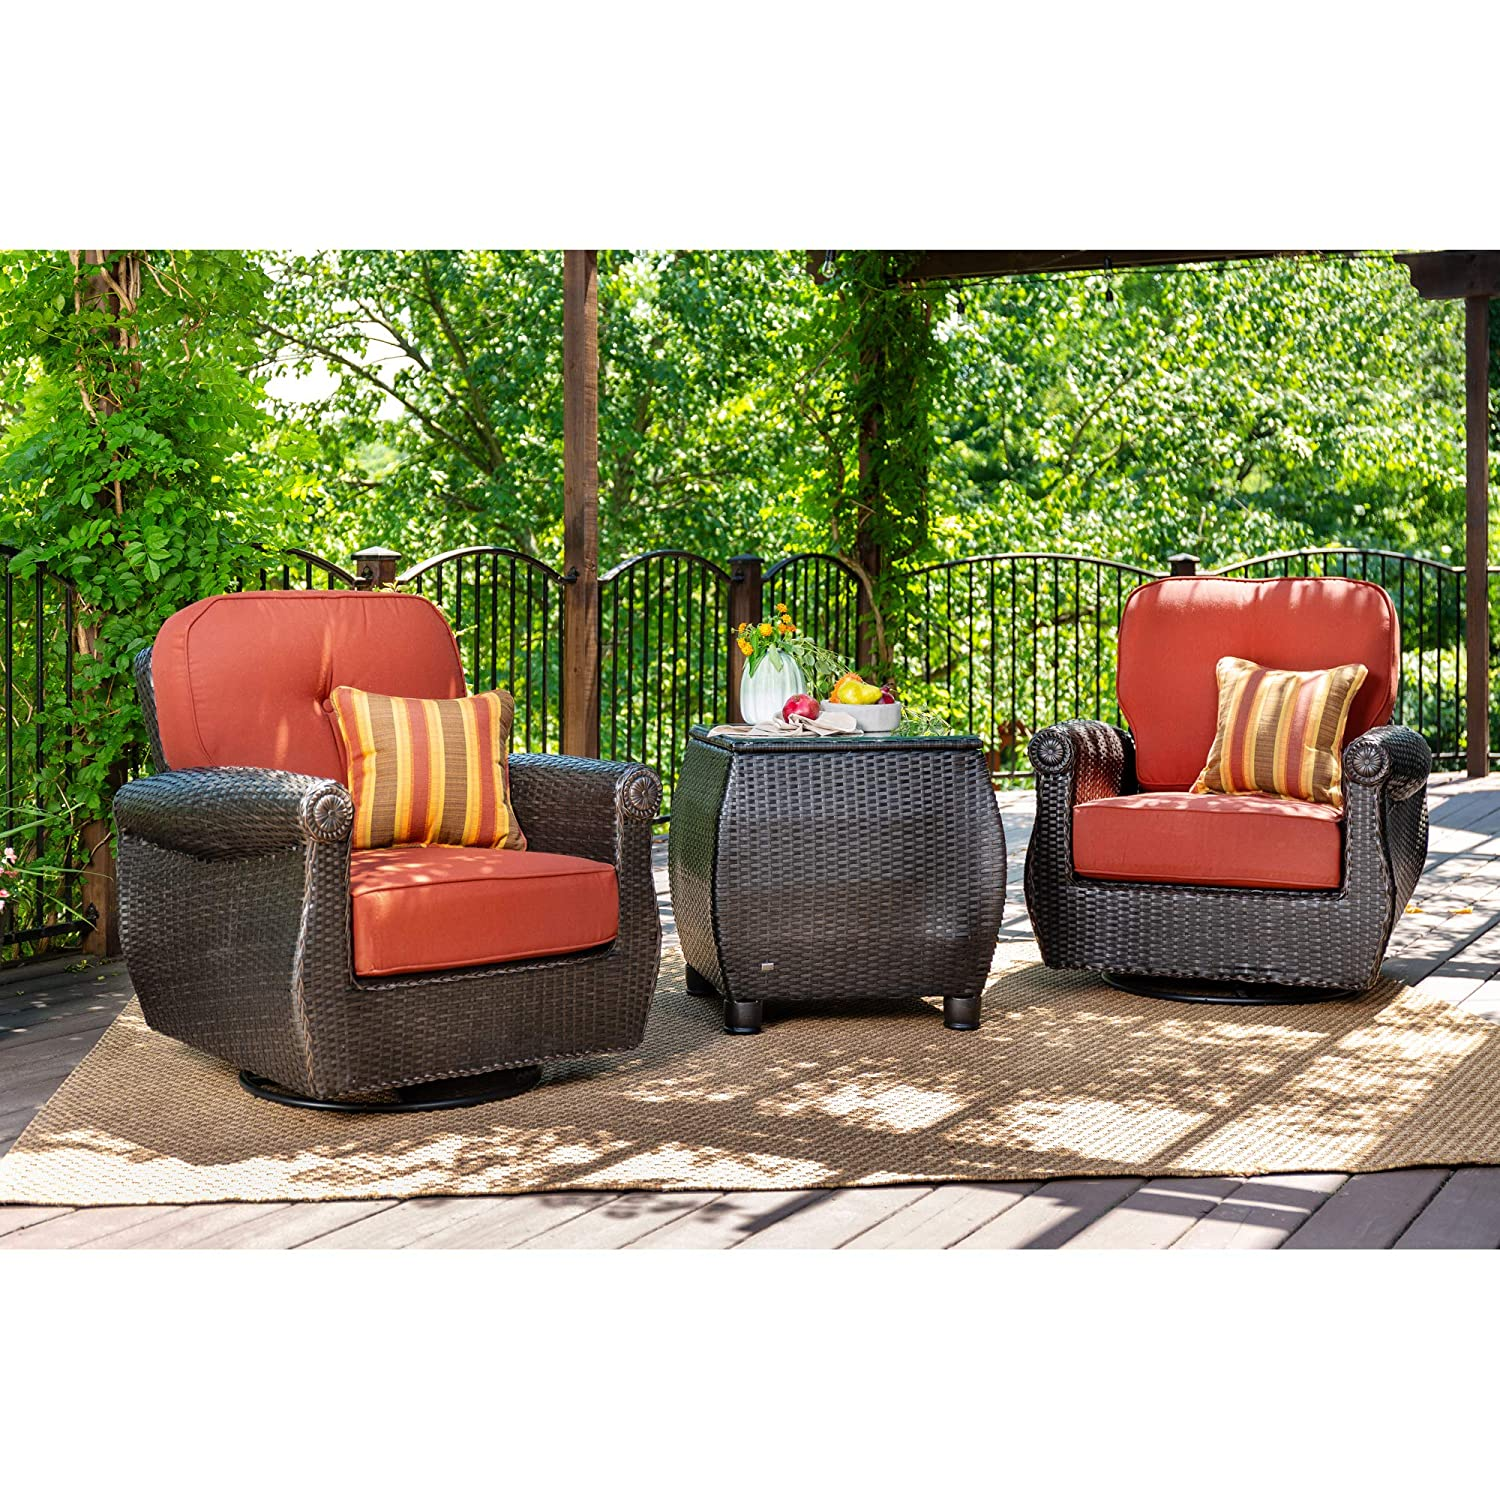 La-Z-Boy Outdoor Breckenridge 3 Piece Resin Wicker Patio Furniture Set Brick Red 2 Swivel Rockers and Side Table with All Weather Sunbrella Cushions